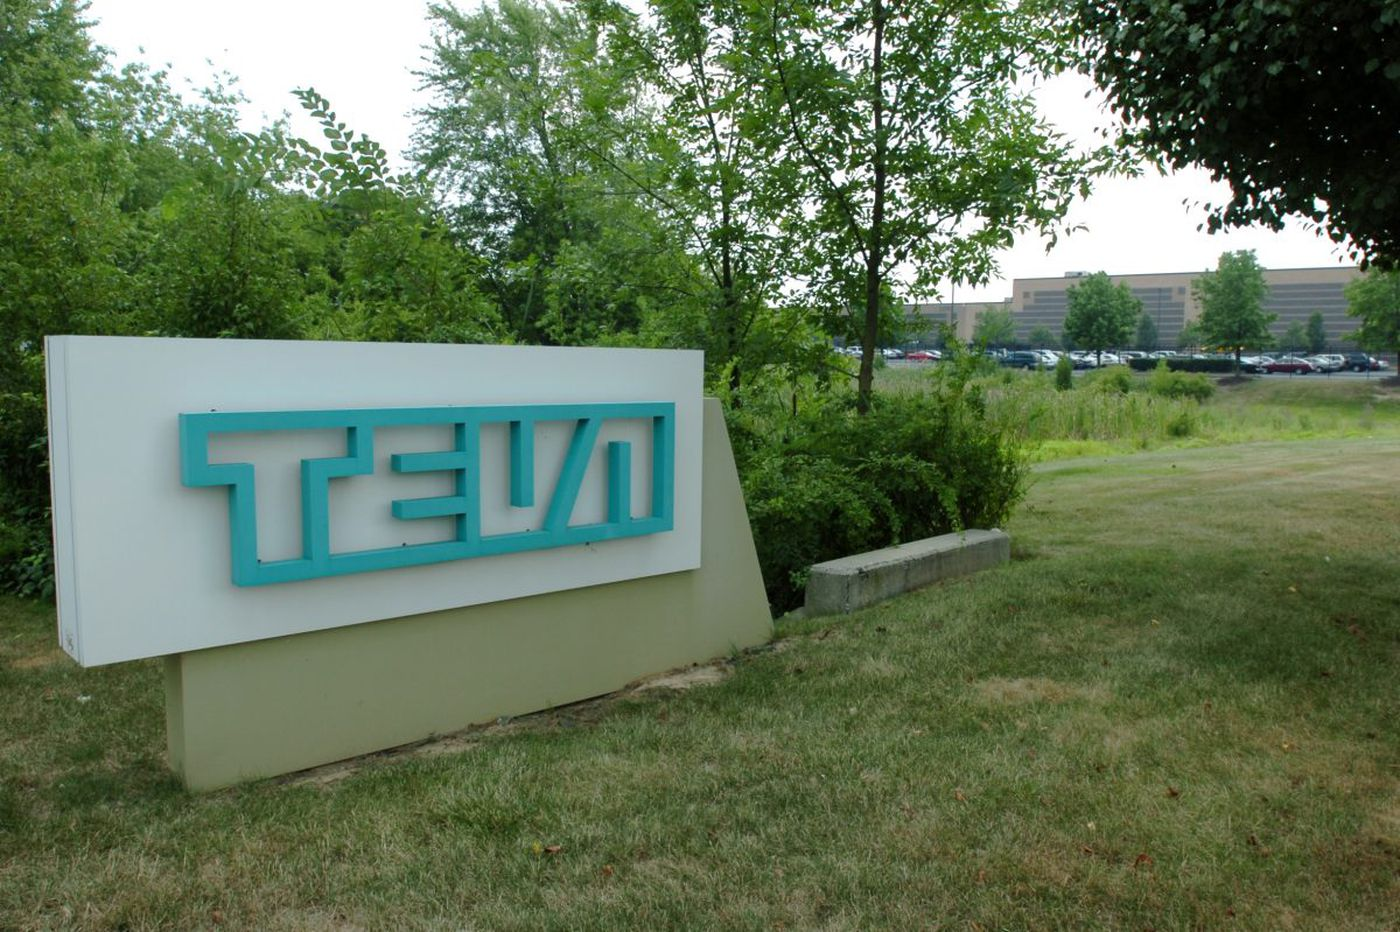 Teva's stock rose after it shuffled leaders, promises streamlining and cuts